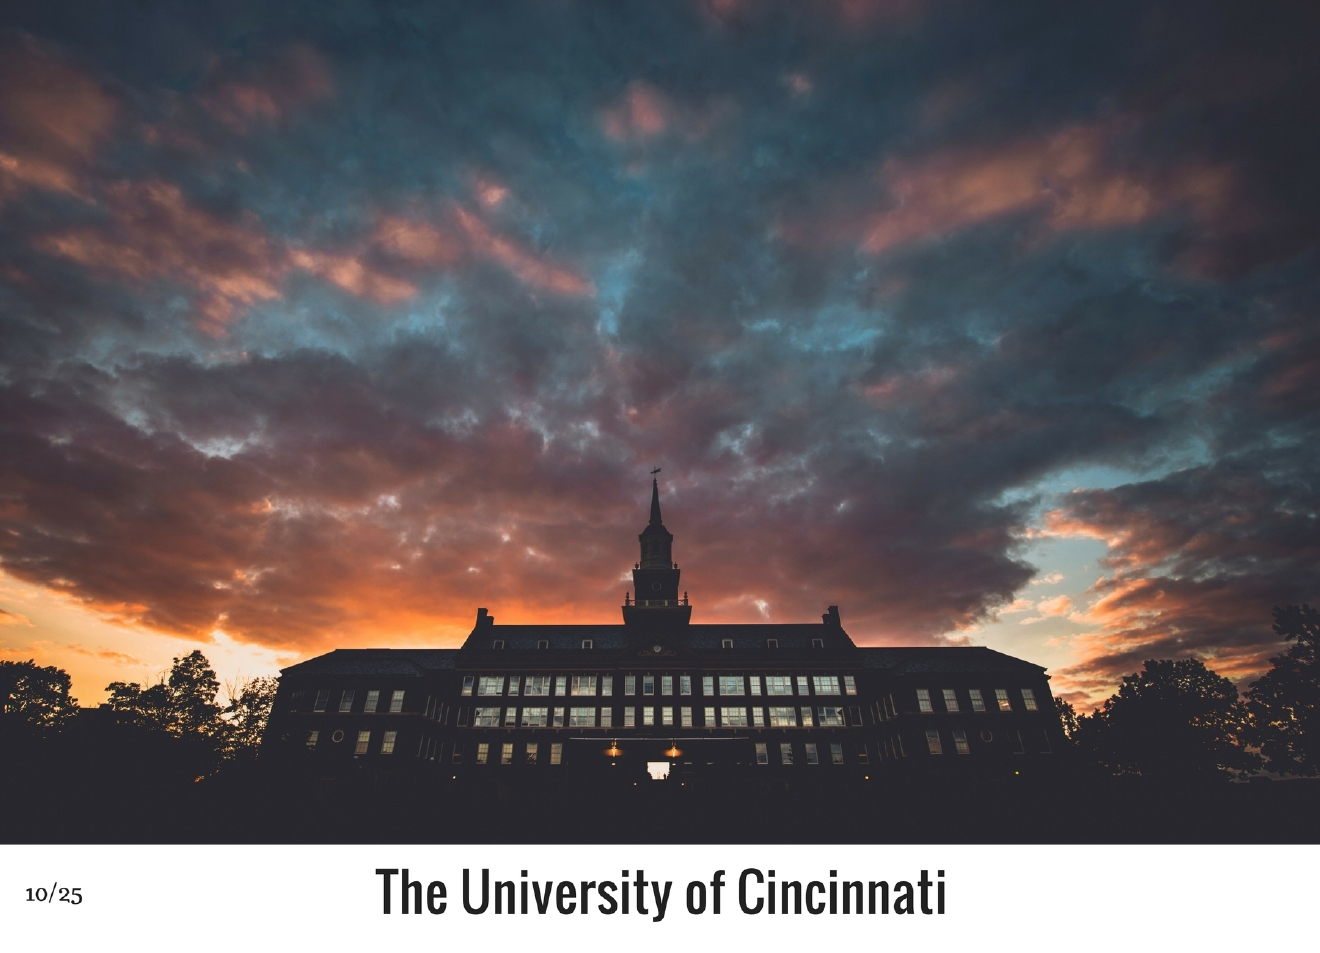 WHAT: The University of Cincinnati / WHERE: 2600 Clifton Avenue, CUF 45220 / Image: Nick Brown / Published: 10.27.16